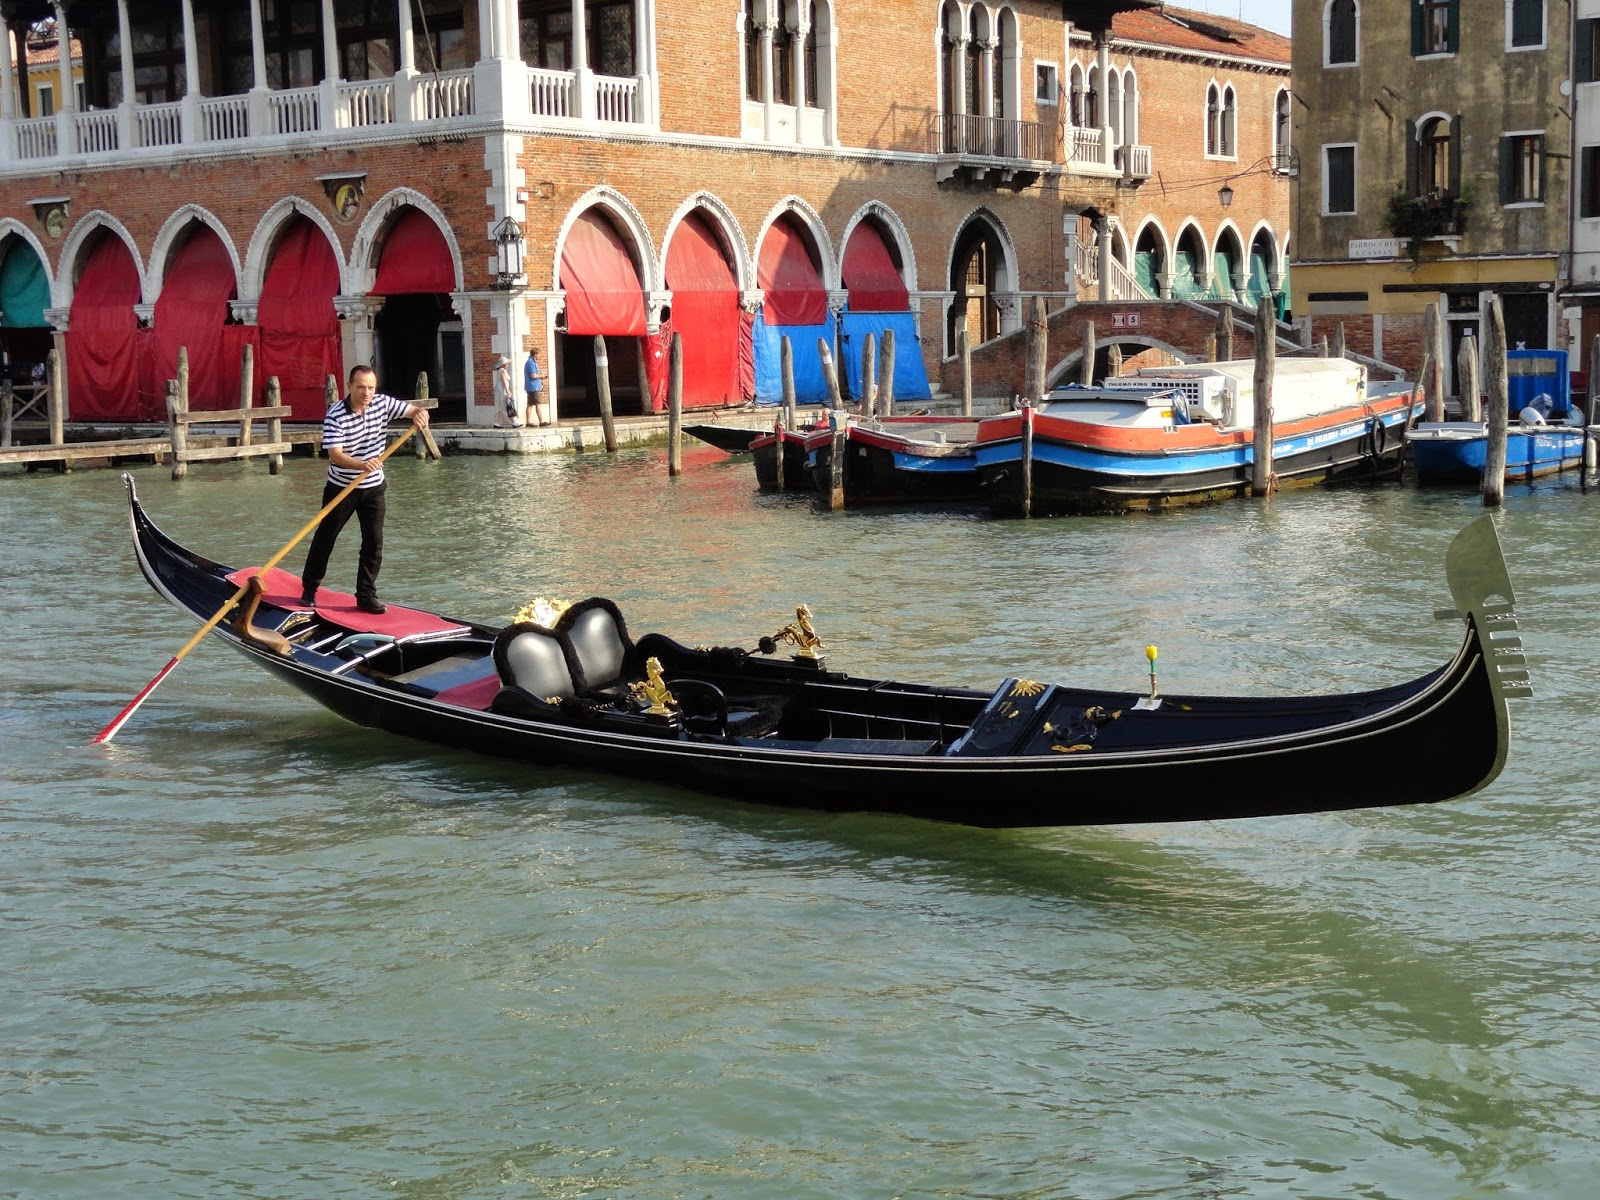 Gondolier-On-The-Grand-Canal-Venice